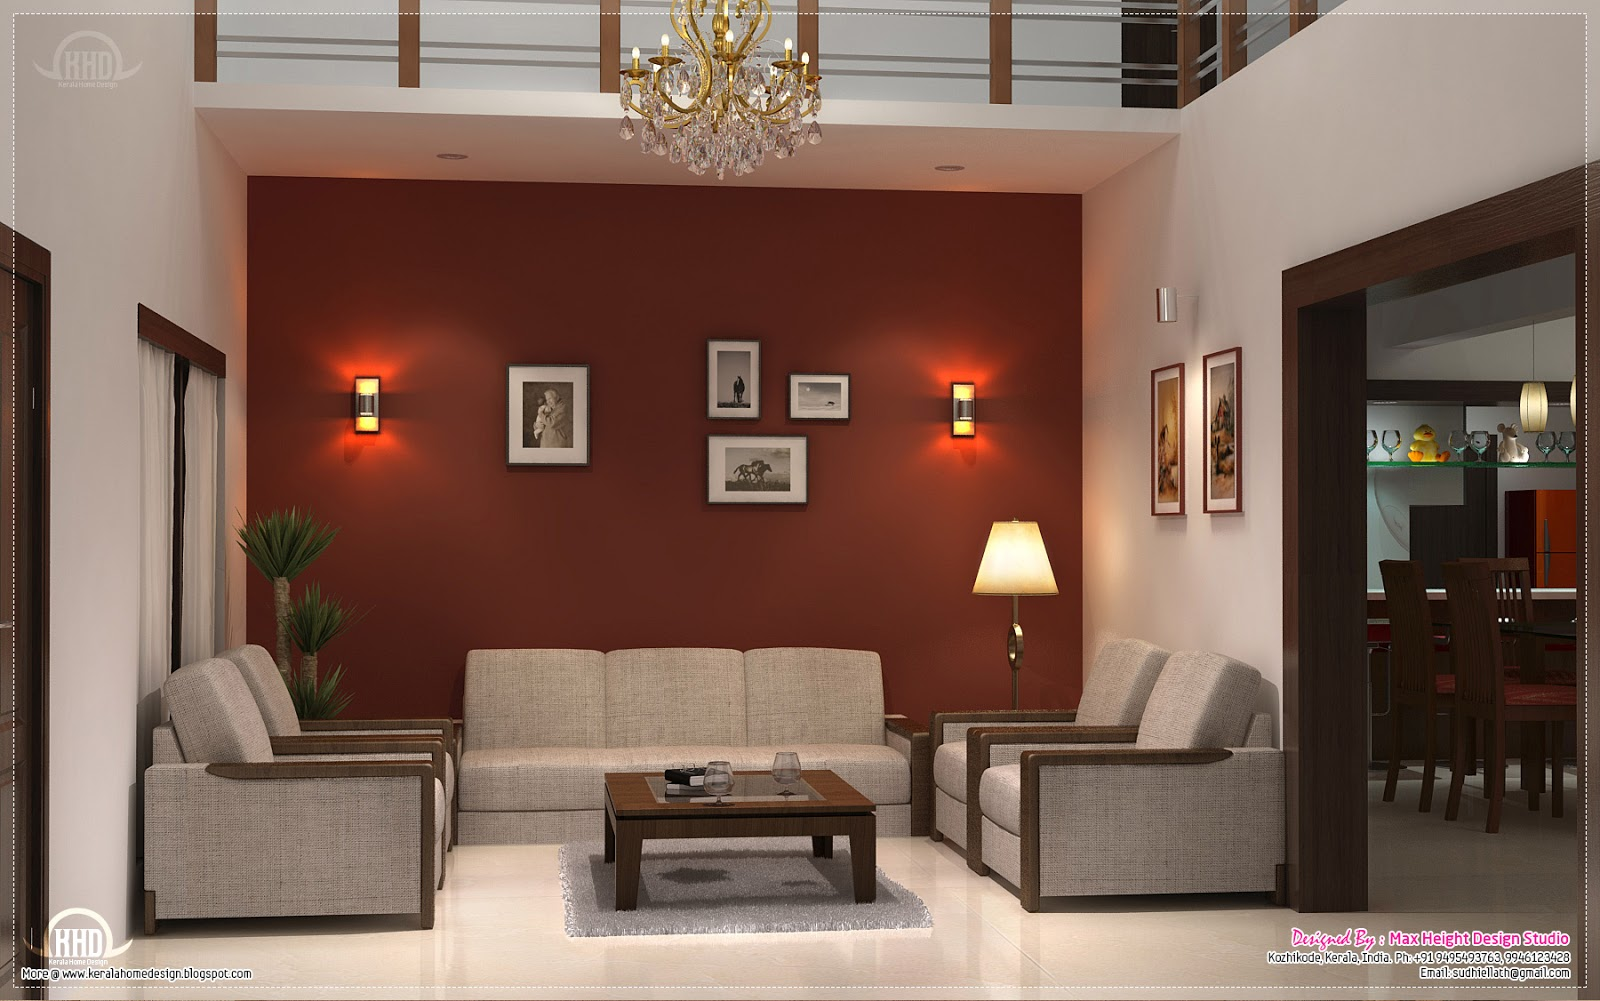 Home interior design ideas home kerala plans for Kerala house interior arch design